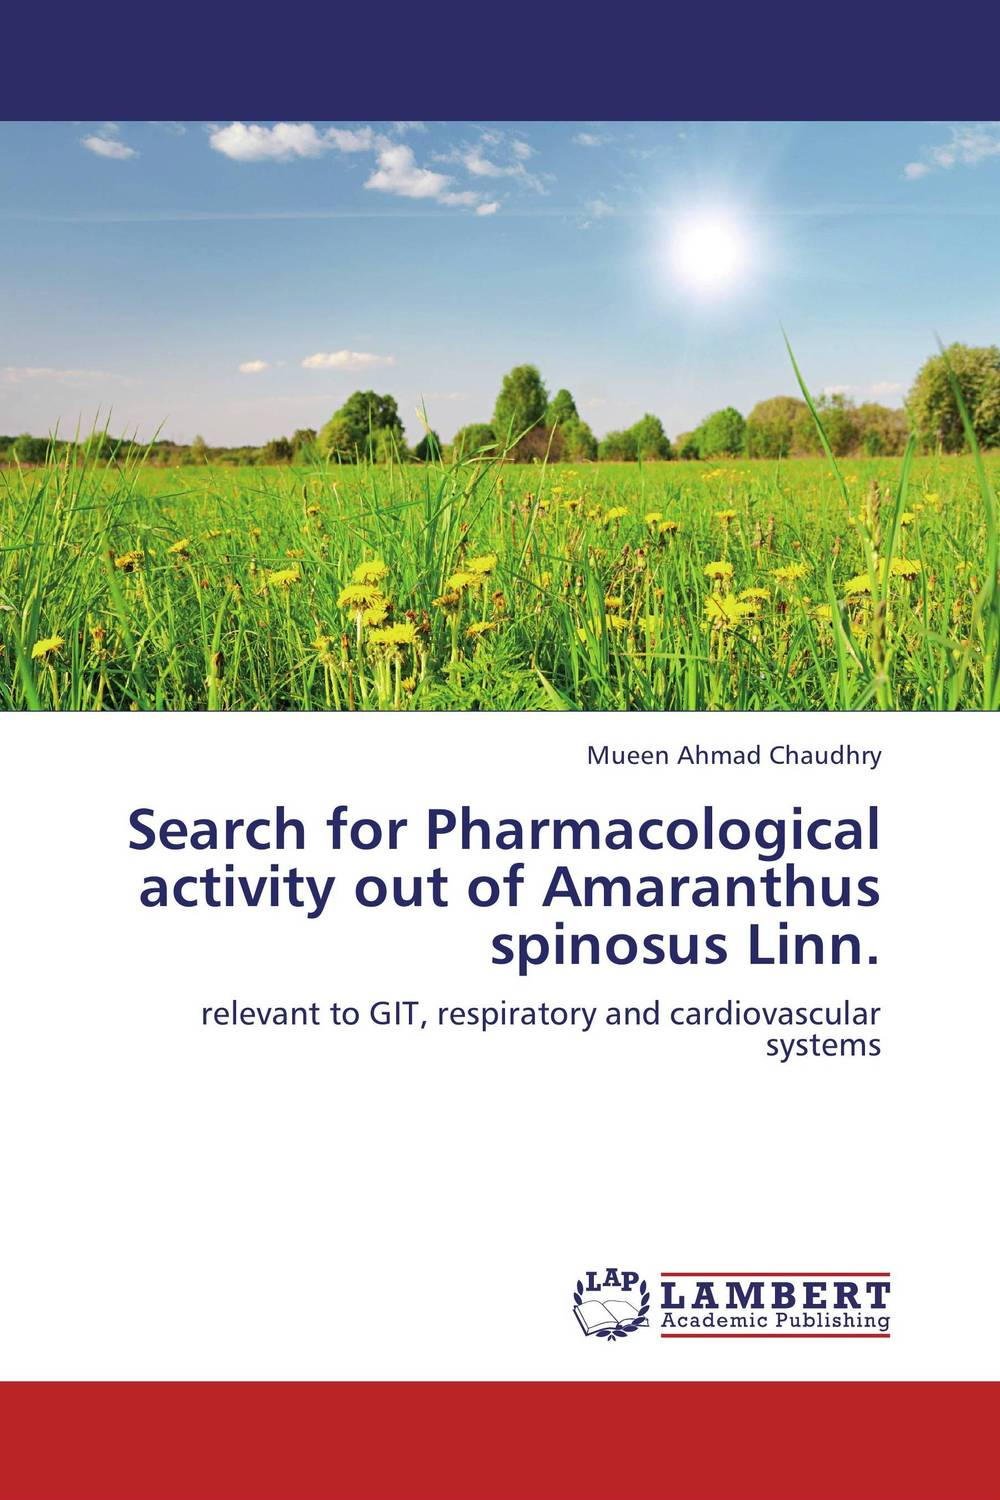 Search for Pharmacological activity out of Amaranthus spinosus Linn.